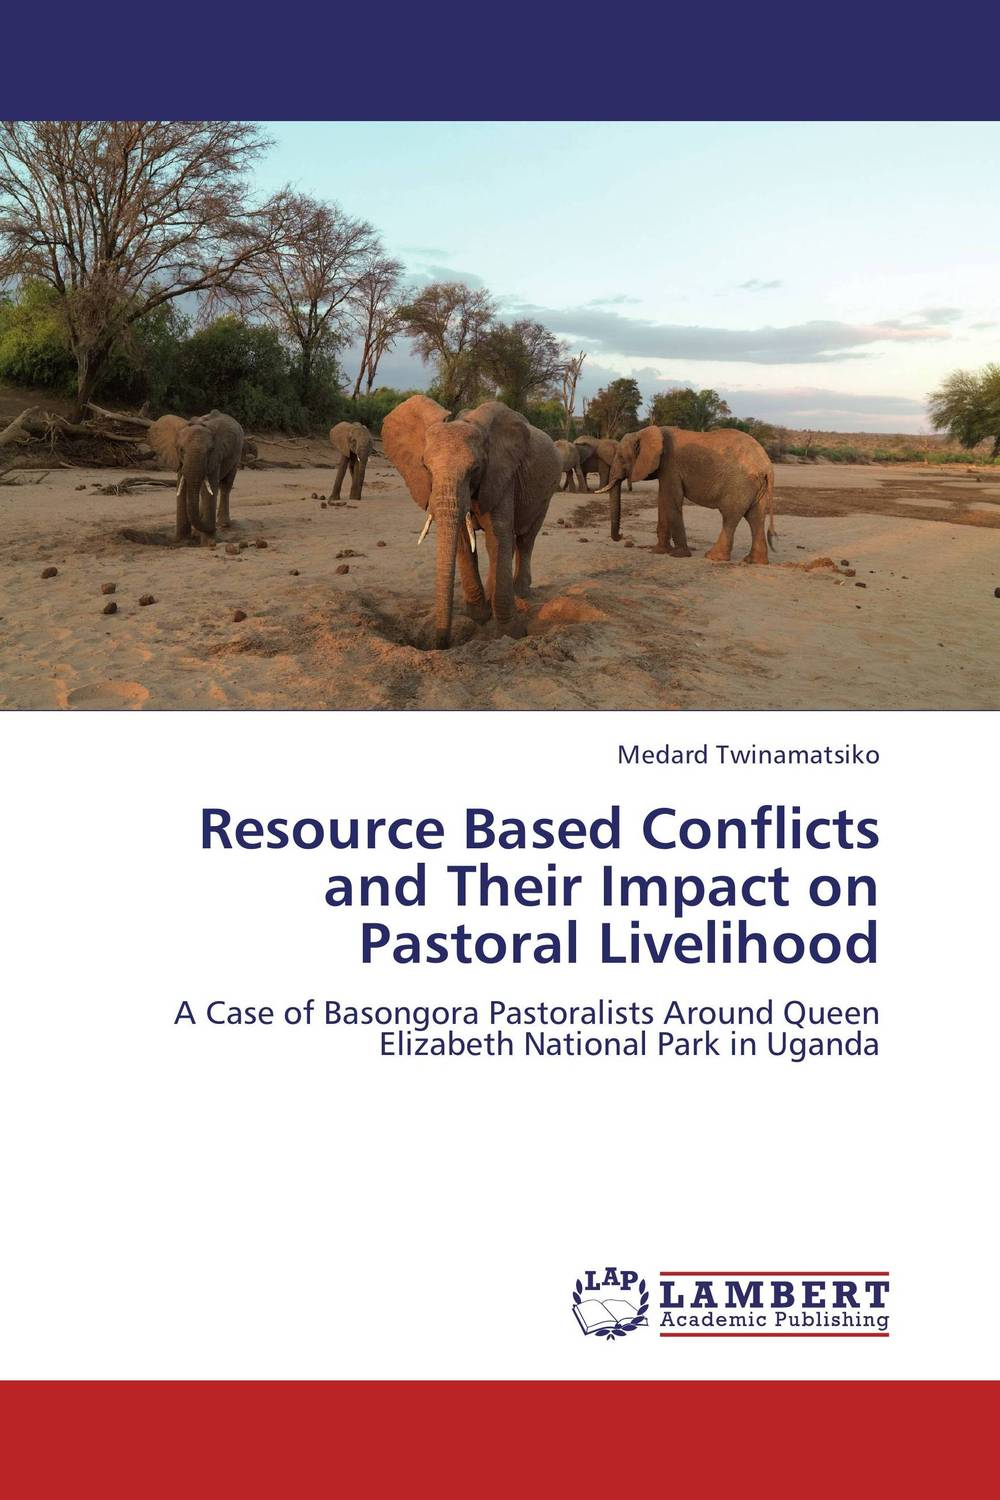 Resource Based Conflicts and Their Impact on Pastoral Livelihood rakesh kumar balbir singh kaith and anshul sharma psyllium based polymer and their salt resistant swelling behaviour